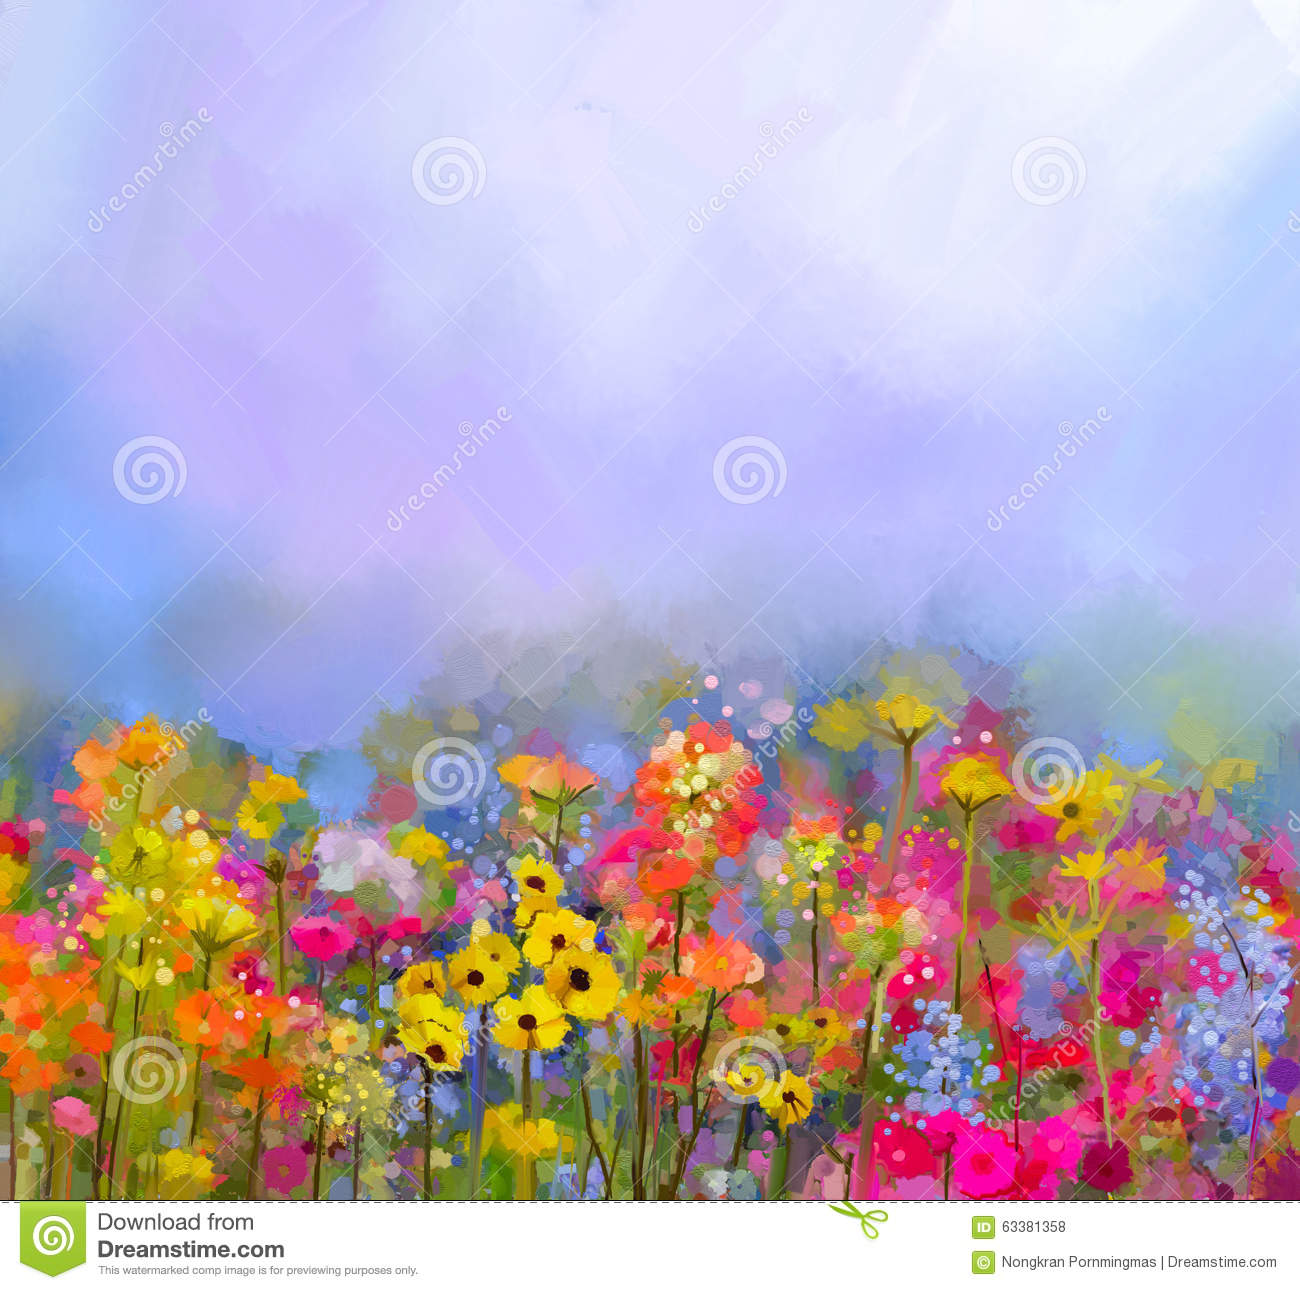 Wild flower meadow clipart 20 free Cliparts | Download ...